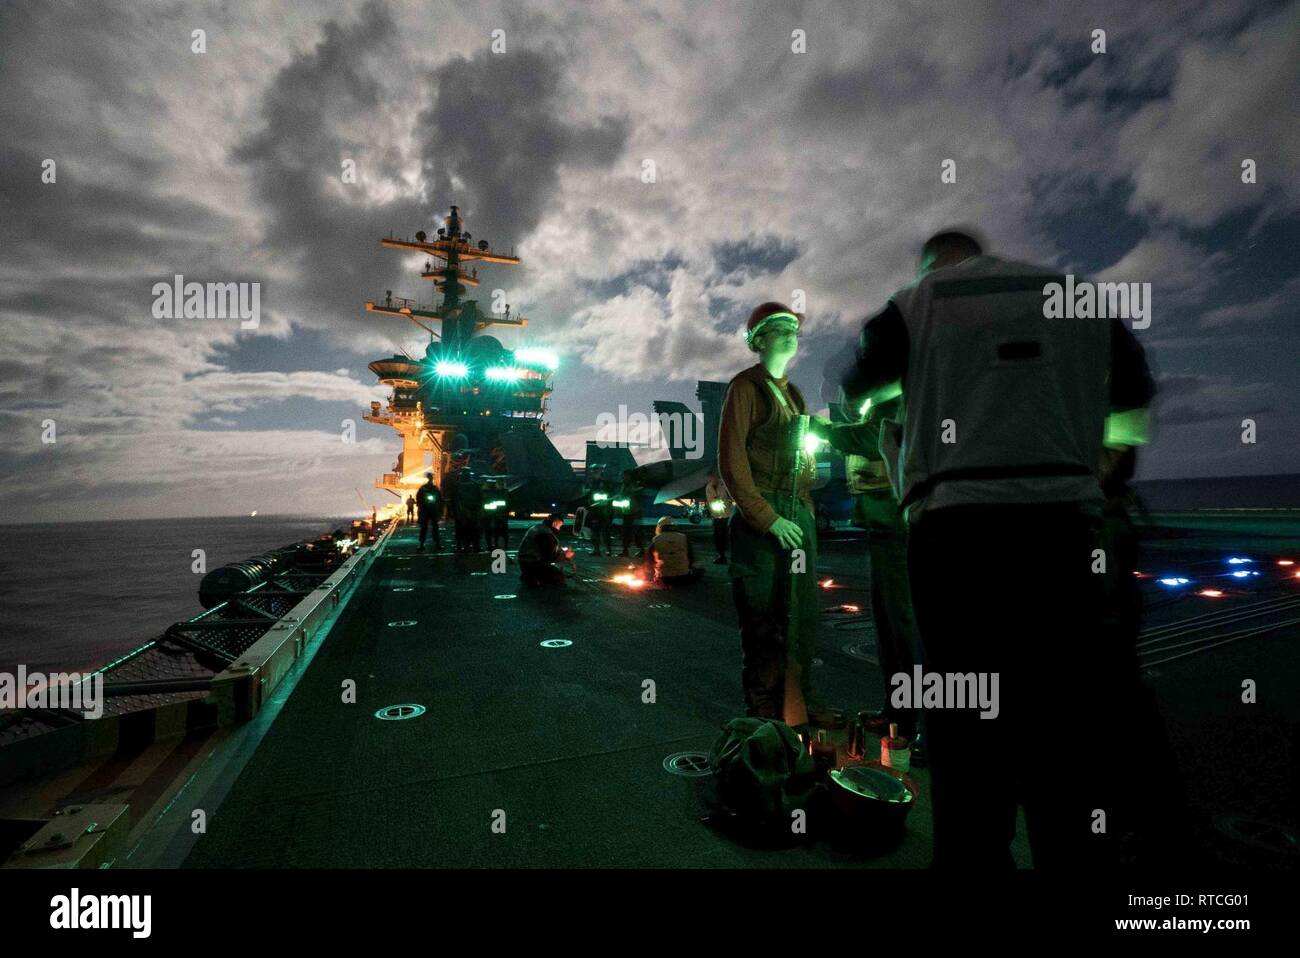 ATLANTIC OCEAN (Feb 16, 2019)  Sailors aboard the Nimitz-class aircraft carrier USS Abraham Lincoln (CVN 72) prepare for replenishment at sea with the Henry J. Kiser-class fleet replenishment oiler USNS Leroy Grumman (T-AO 195). Abraham Lincoln is underway conducting composite training unit exercise (COMPTUEX) with Carrier Strike Group (CSG) 12. The components of CSG 12 embody a 'team-of-teams' concept, combining advanced surface, air and systems assets to create and sustain operational capability. This enables them to prepare for and conduct global operations, have effective and lasting comma - Stock Image